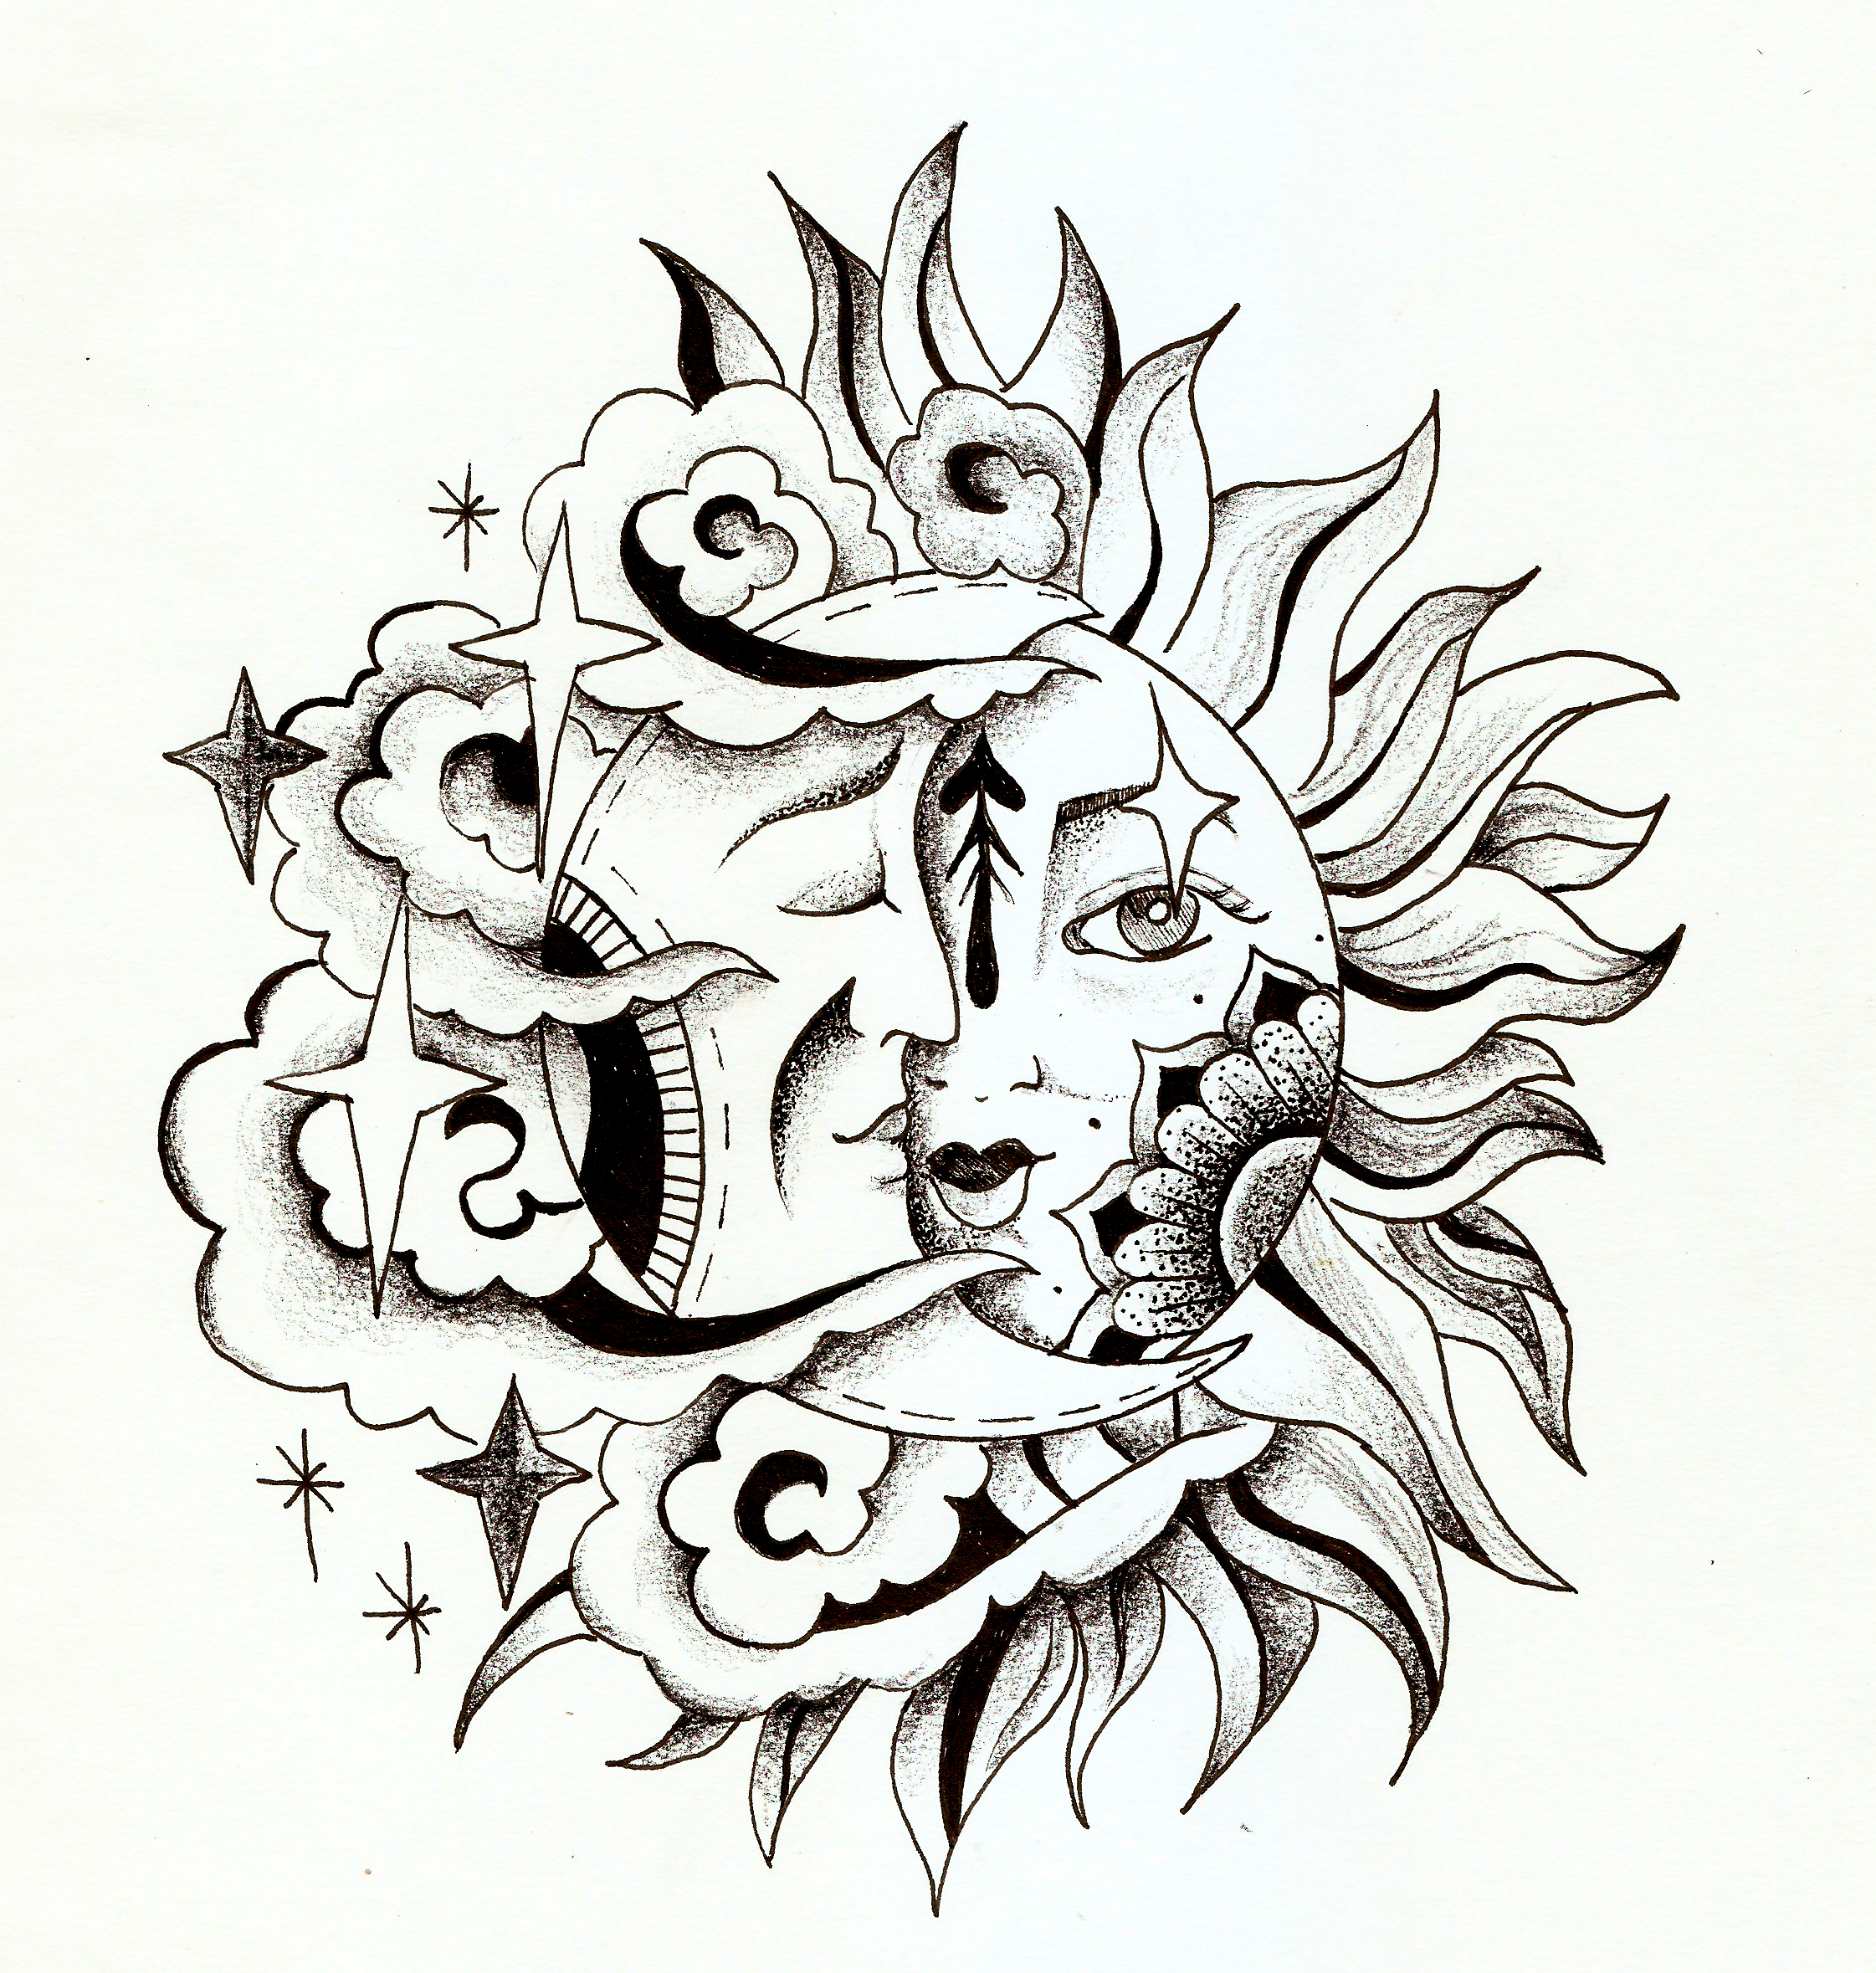 Tattoo Design Moon Sun Tattoo Ink Sketch Moon Tattoo Moon Tattoo Designs Body Art Tattoos